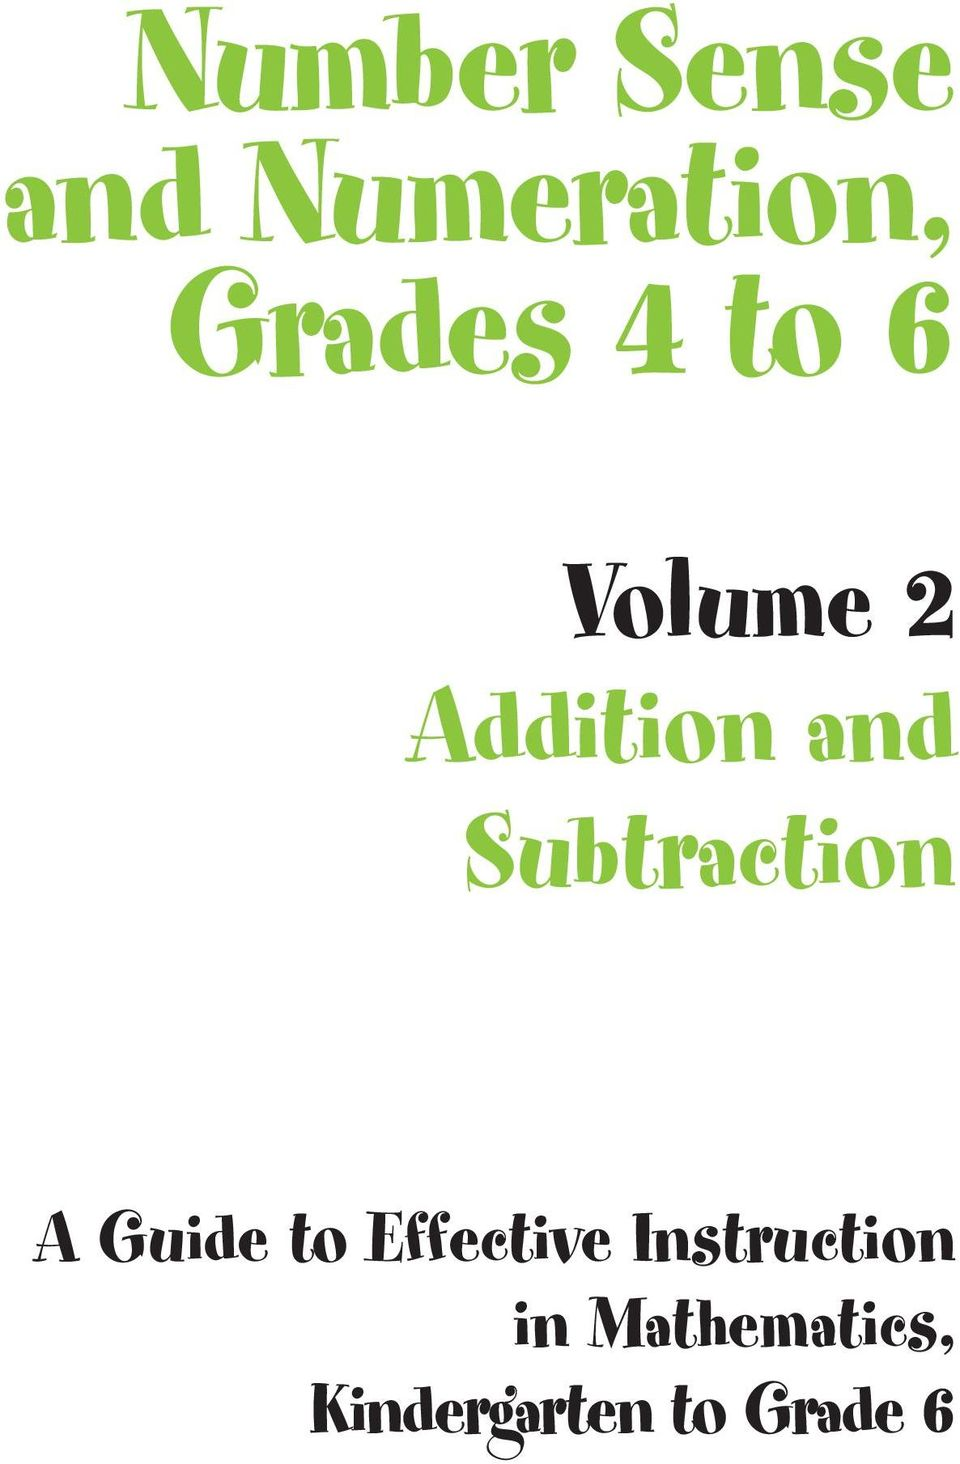 Subtraction A Guide to Effective